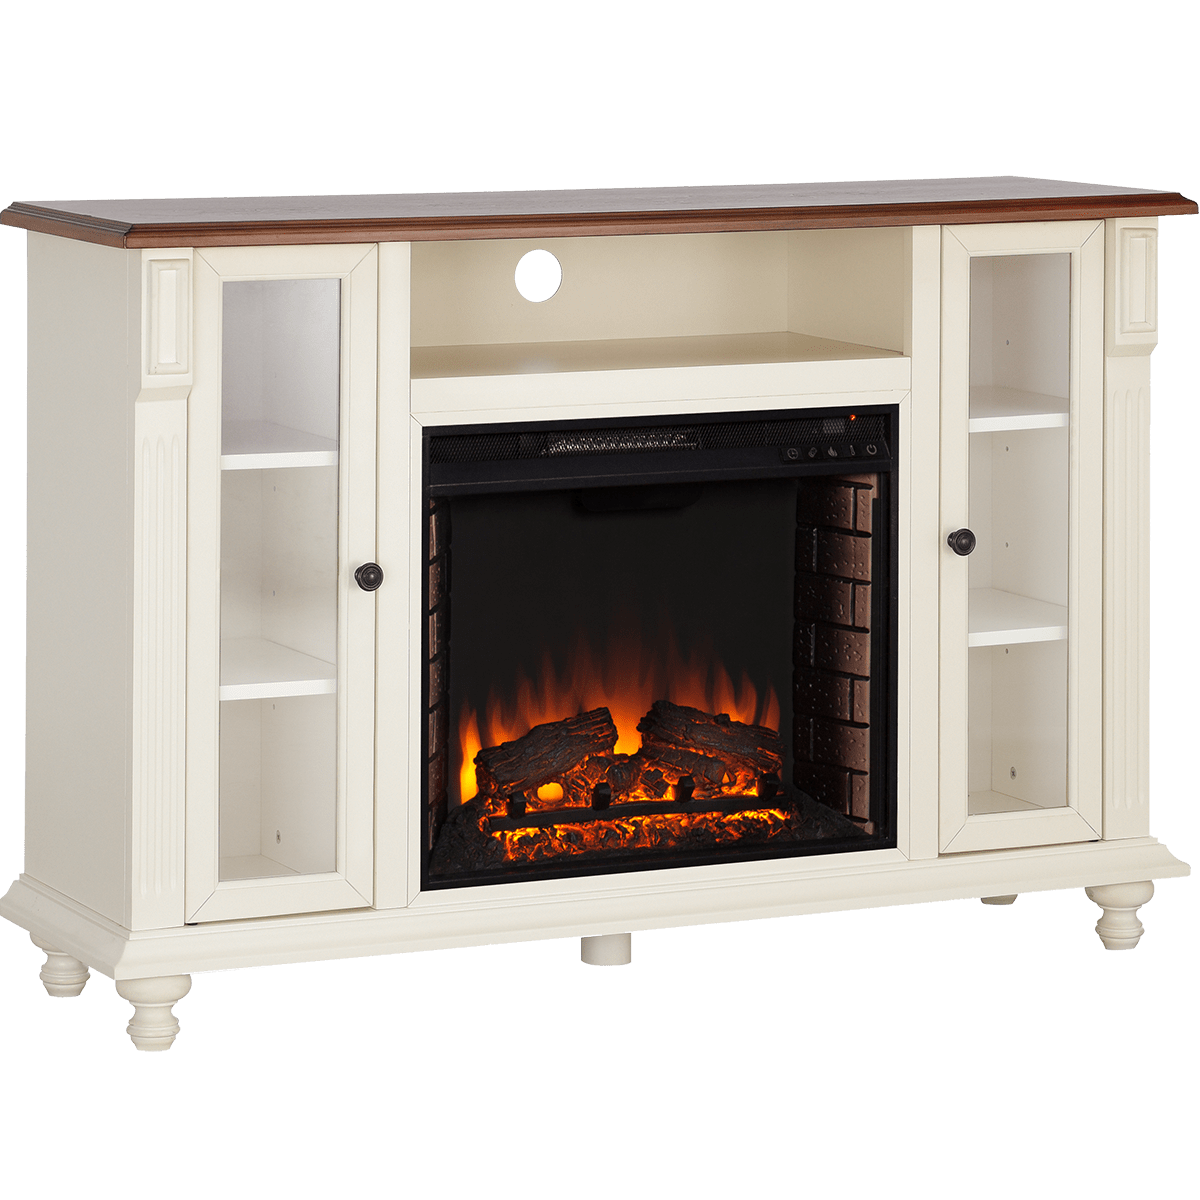 The Southern Enterprises Carlinville Electric Fireplace TV stand ships free when you shop Sylvane. Click or give one of our product experts a call for more information!